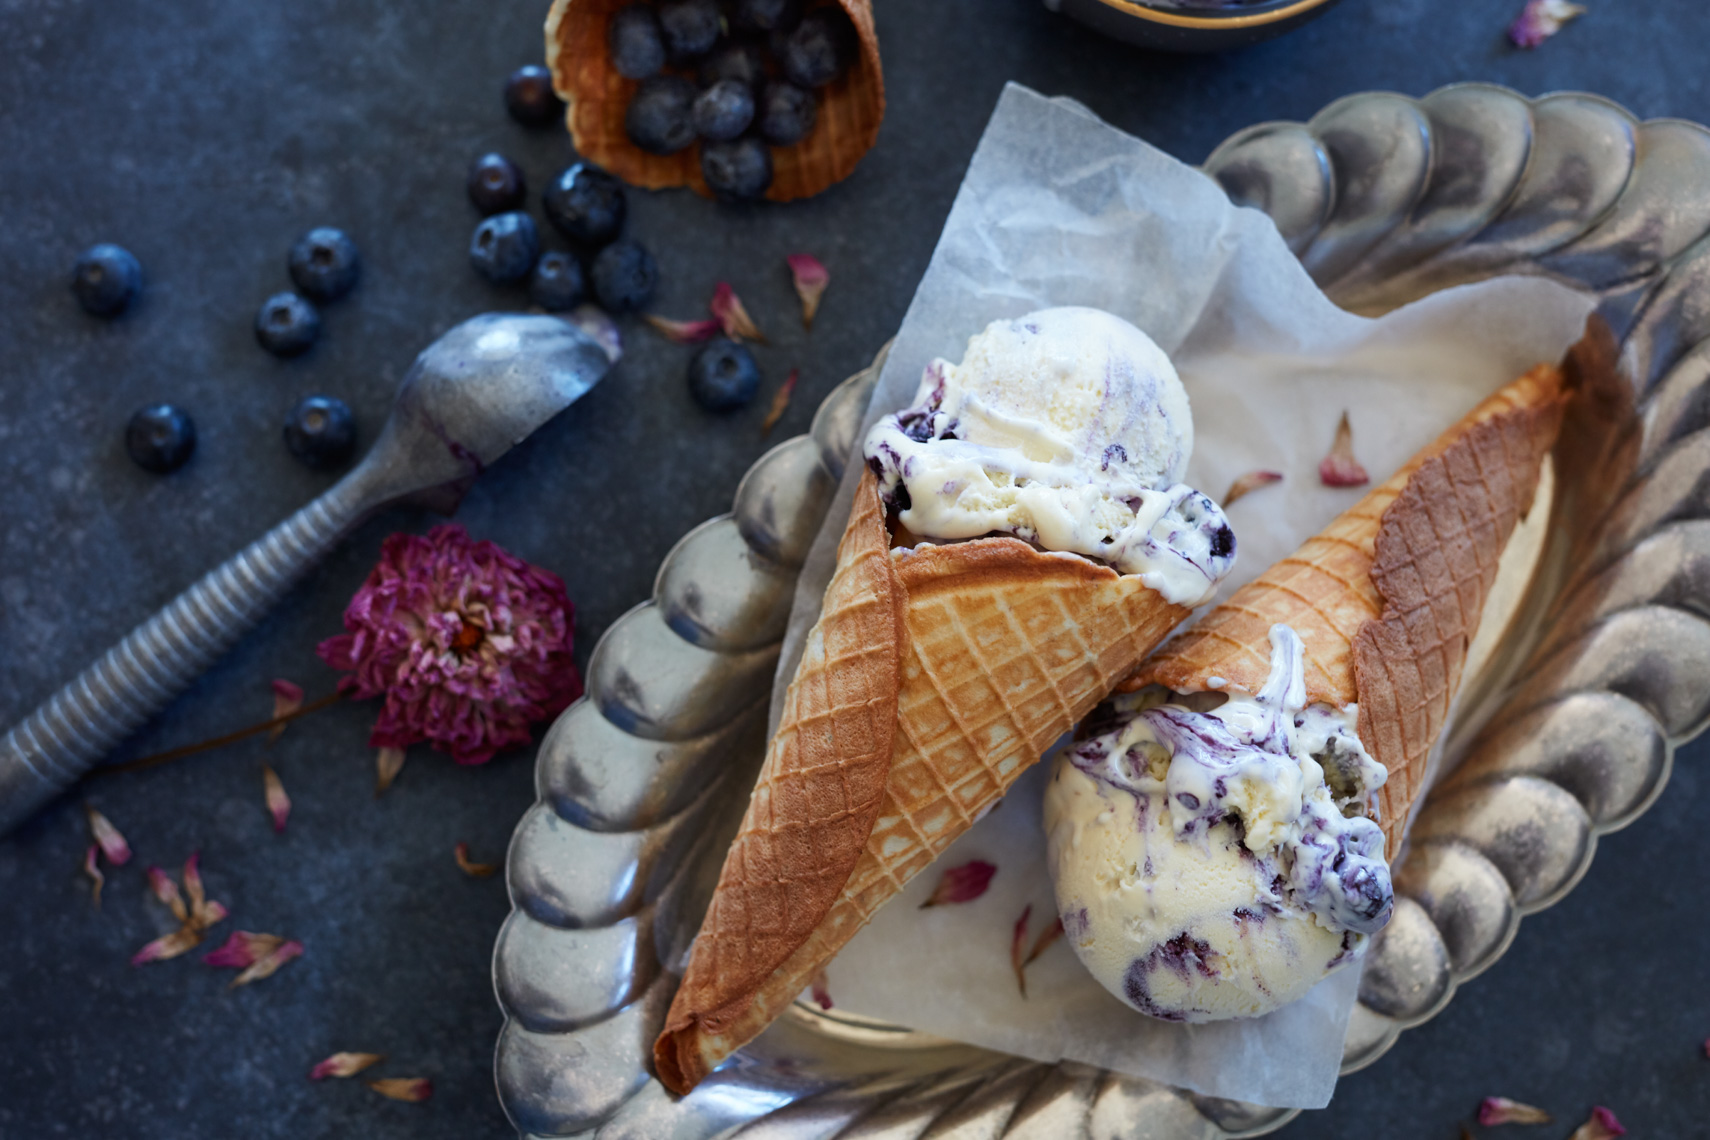 blueberry ice cream in waffle cones on silver tray with ice cream scooper